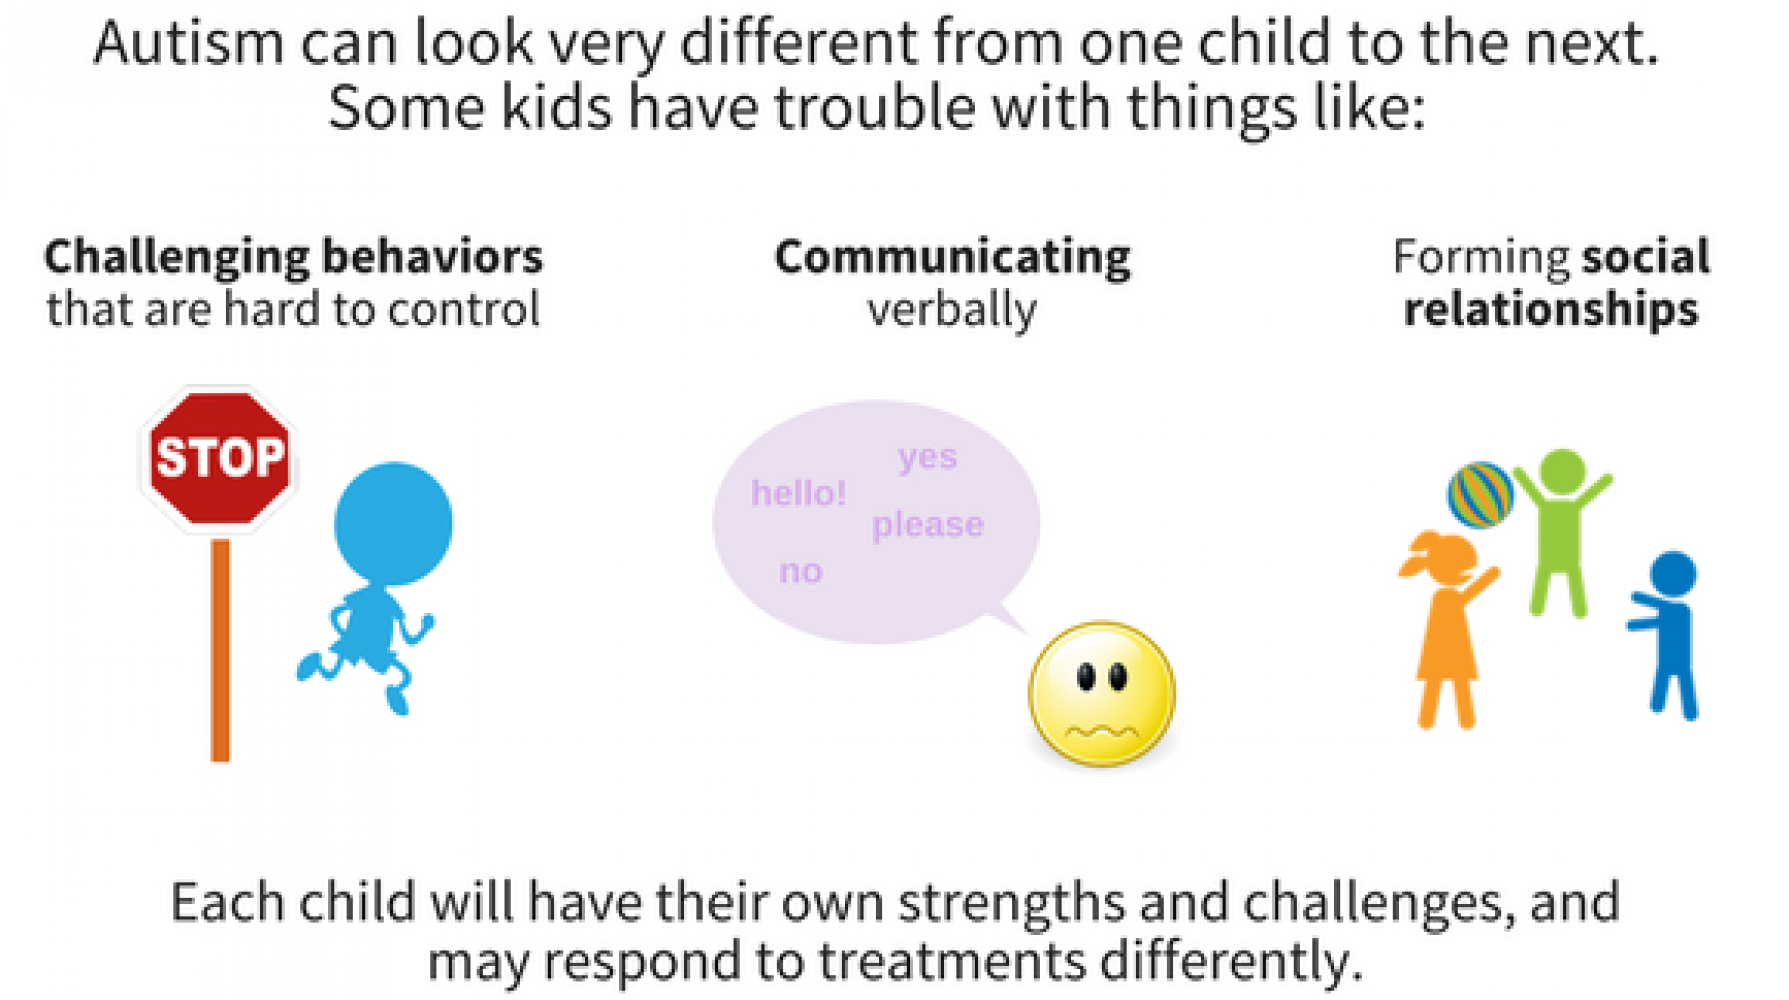 Autism can look very different from one child to the next. Some kids have trouble with things like: challenges behaviors that are hard to control, communicating verbally, or forming social relationships. Each child will have their own strengths and challenges, and may respond to treatments differently.